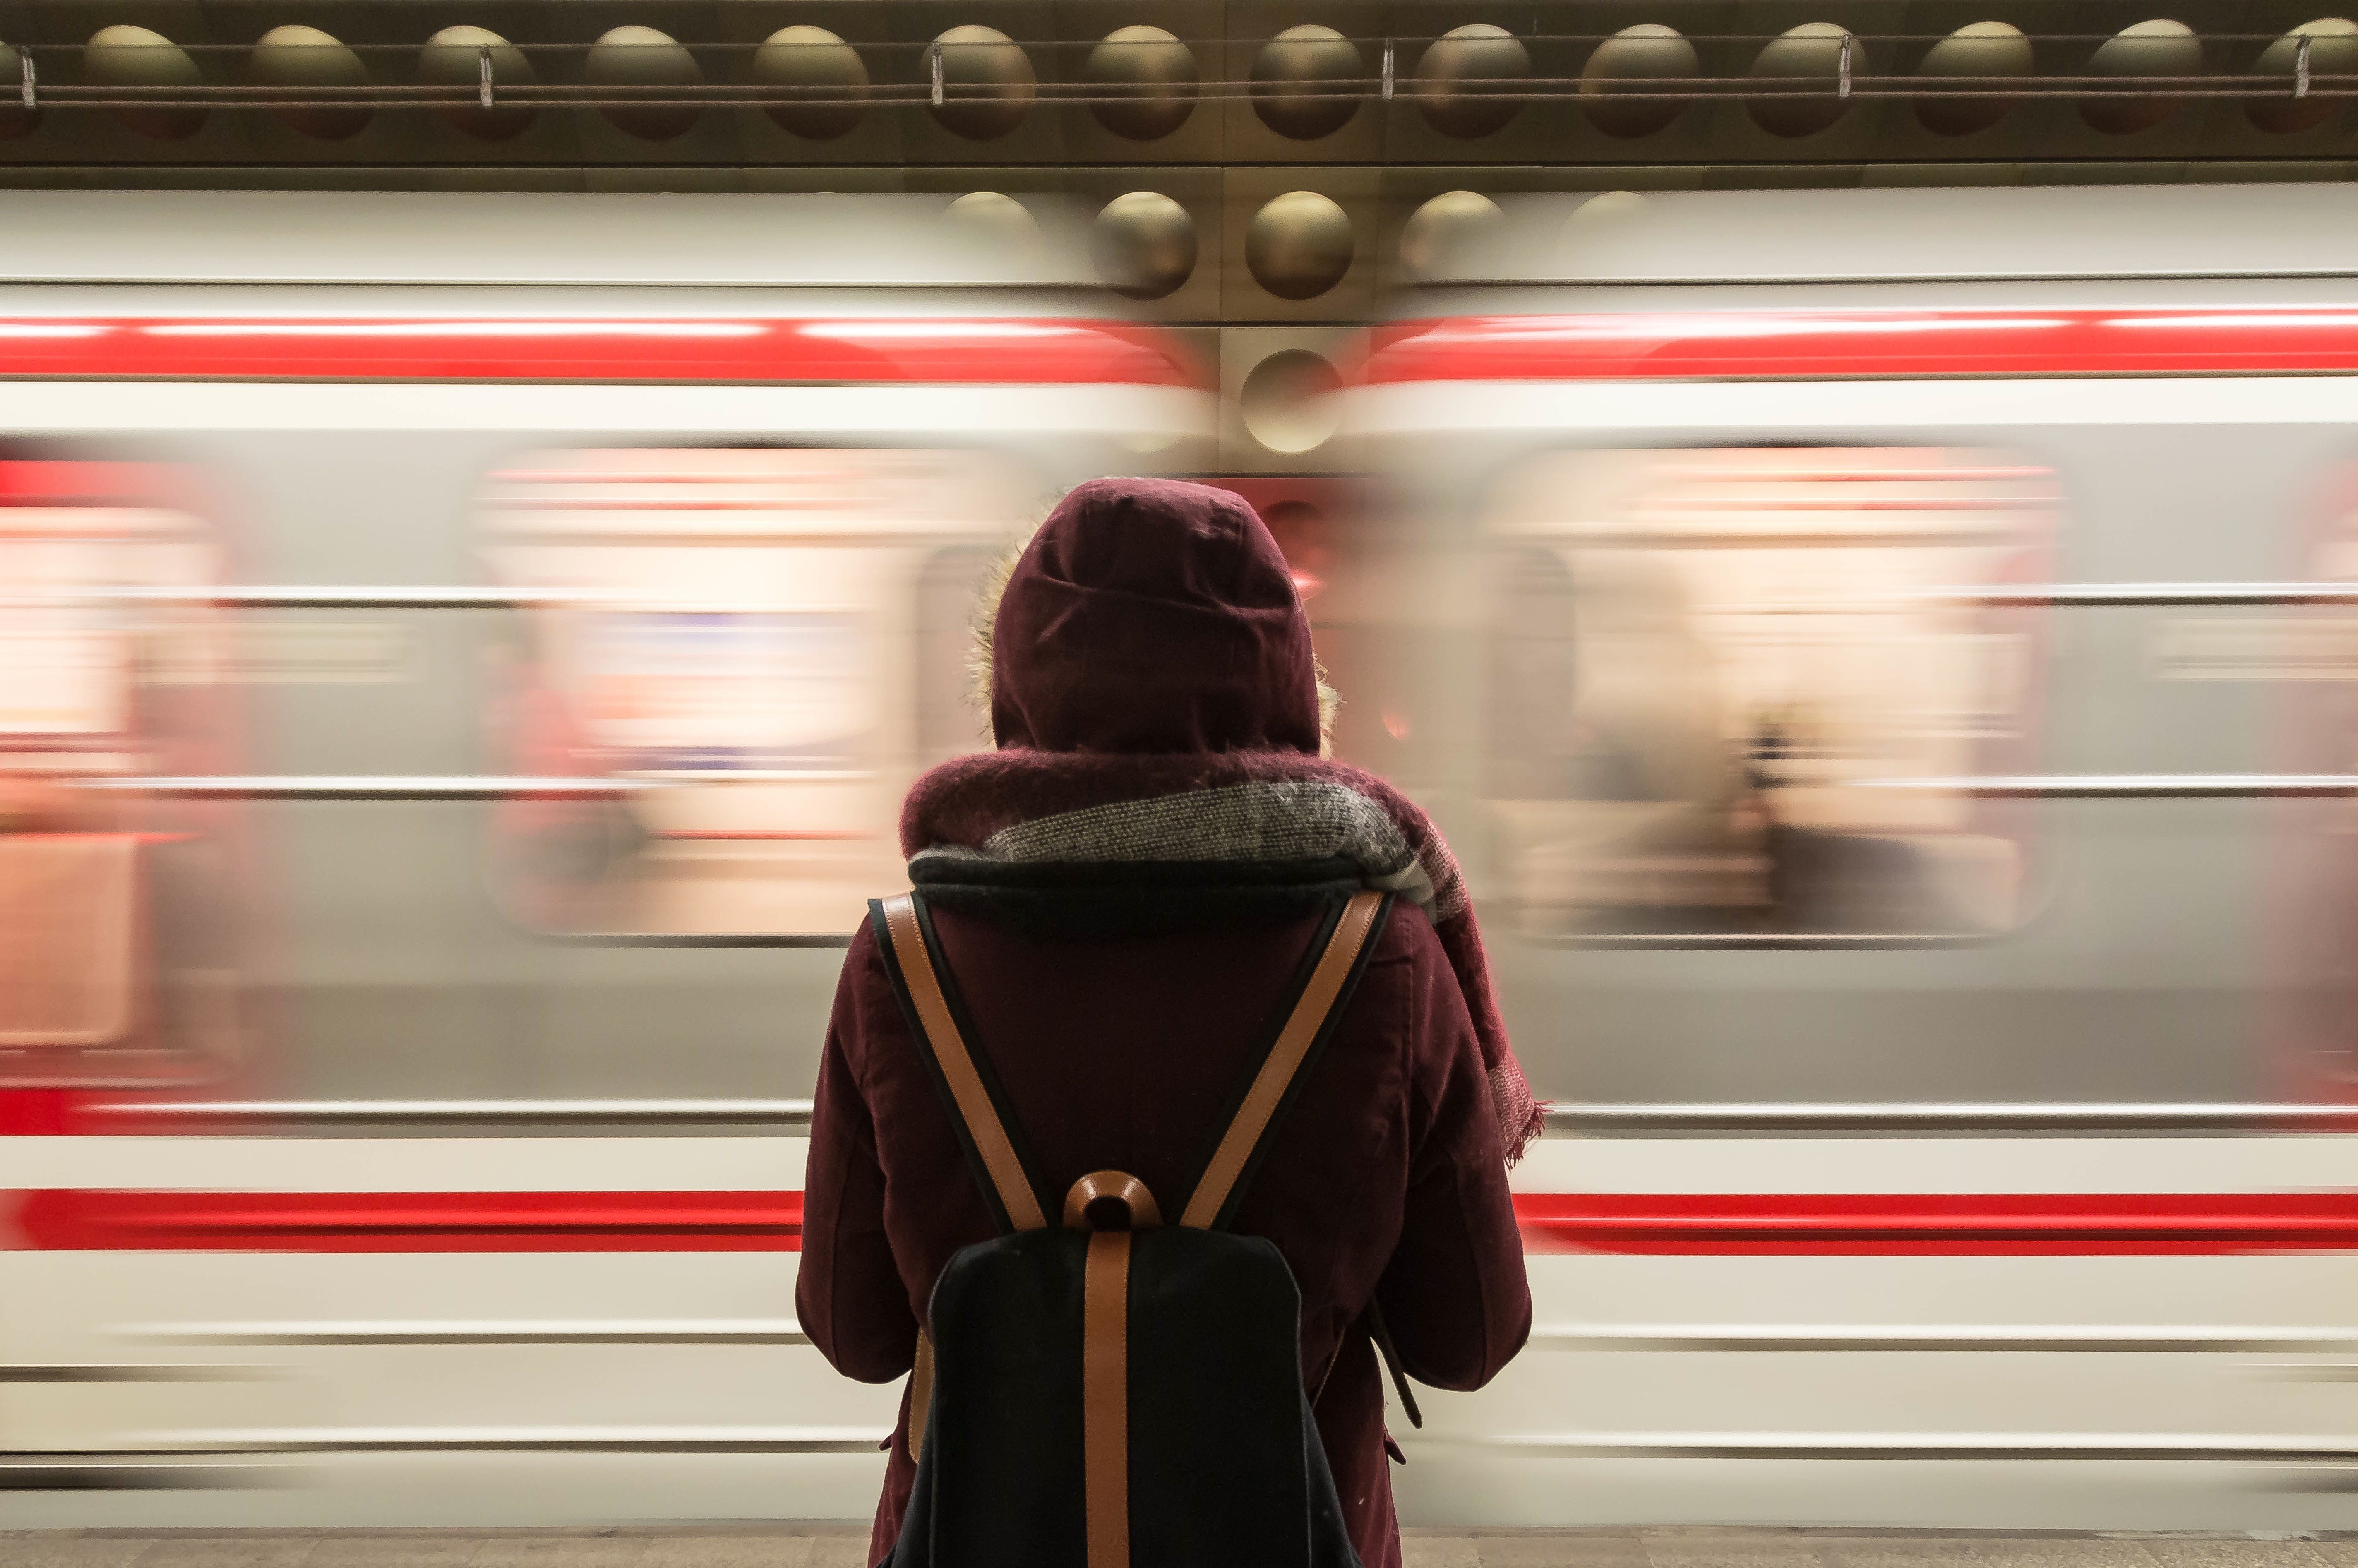 A lady at a train station | Photo: Pexels